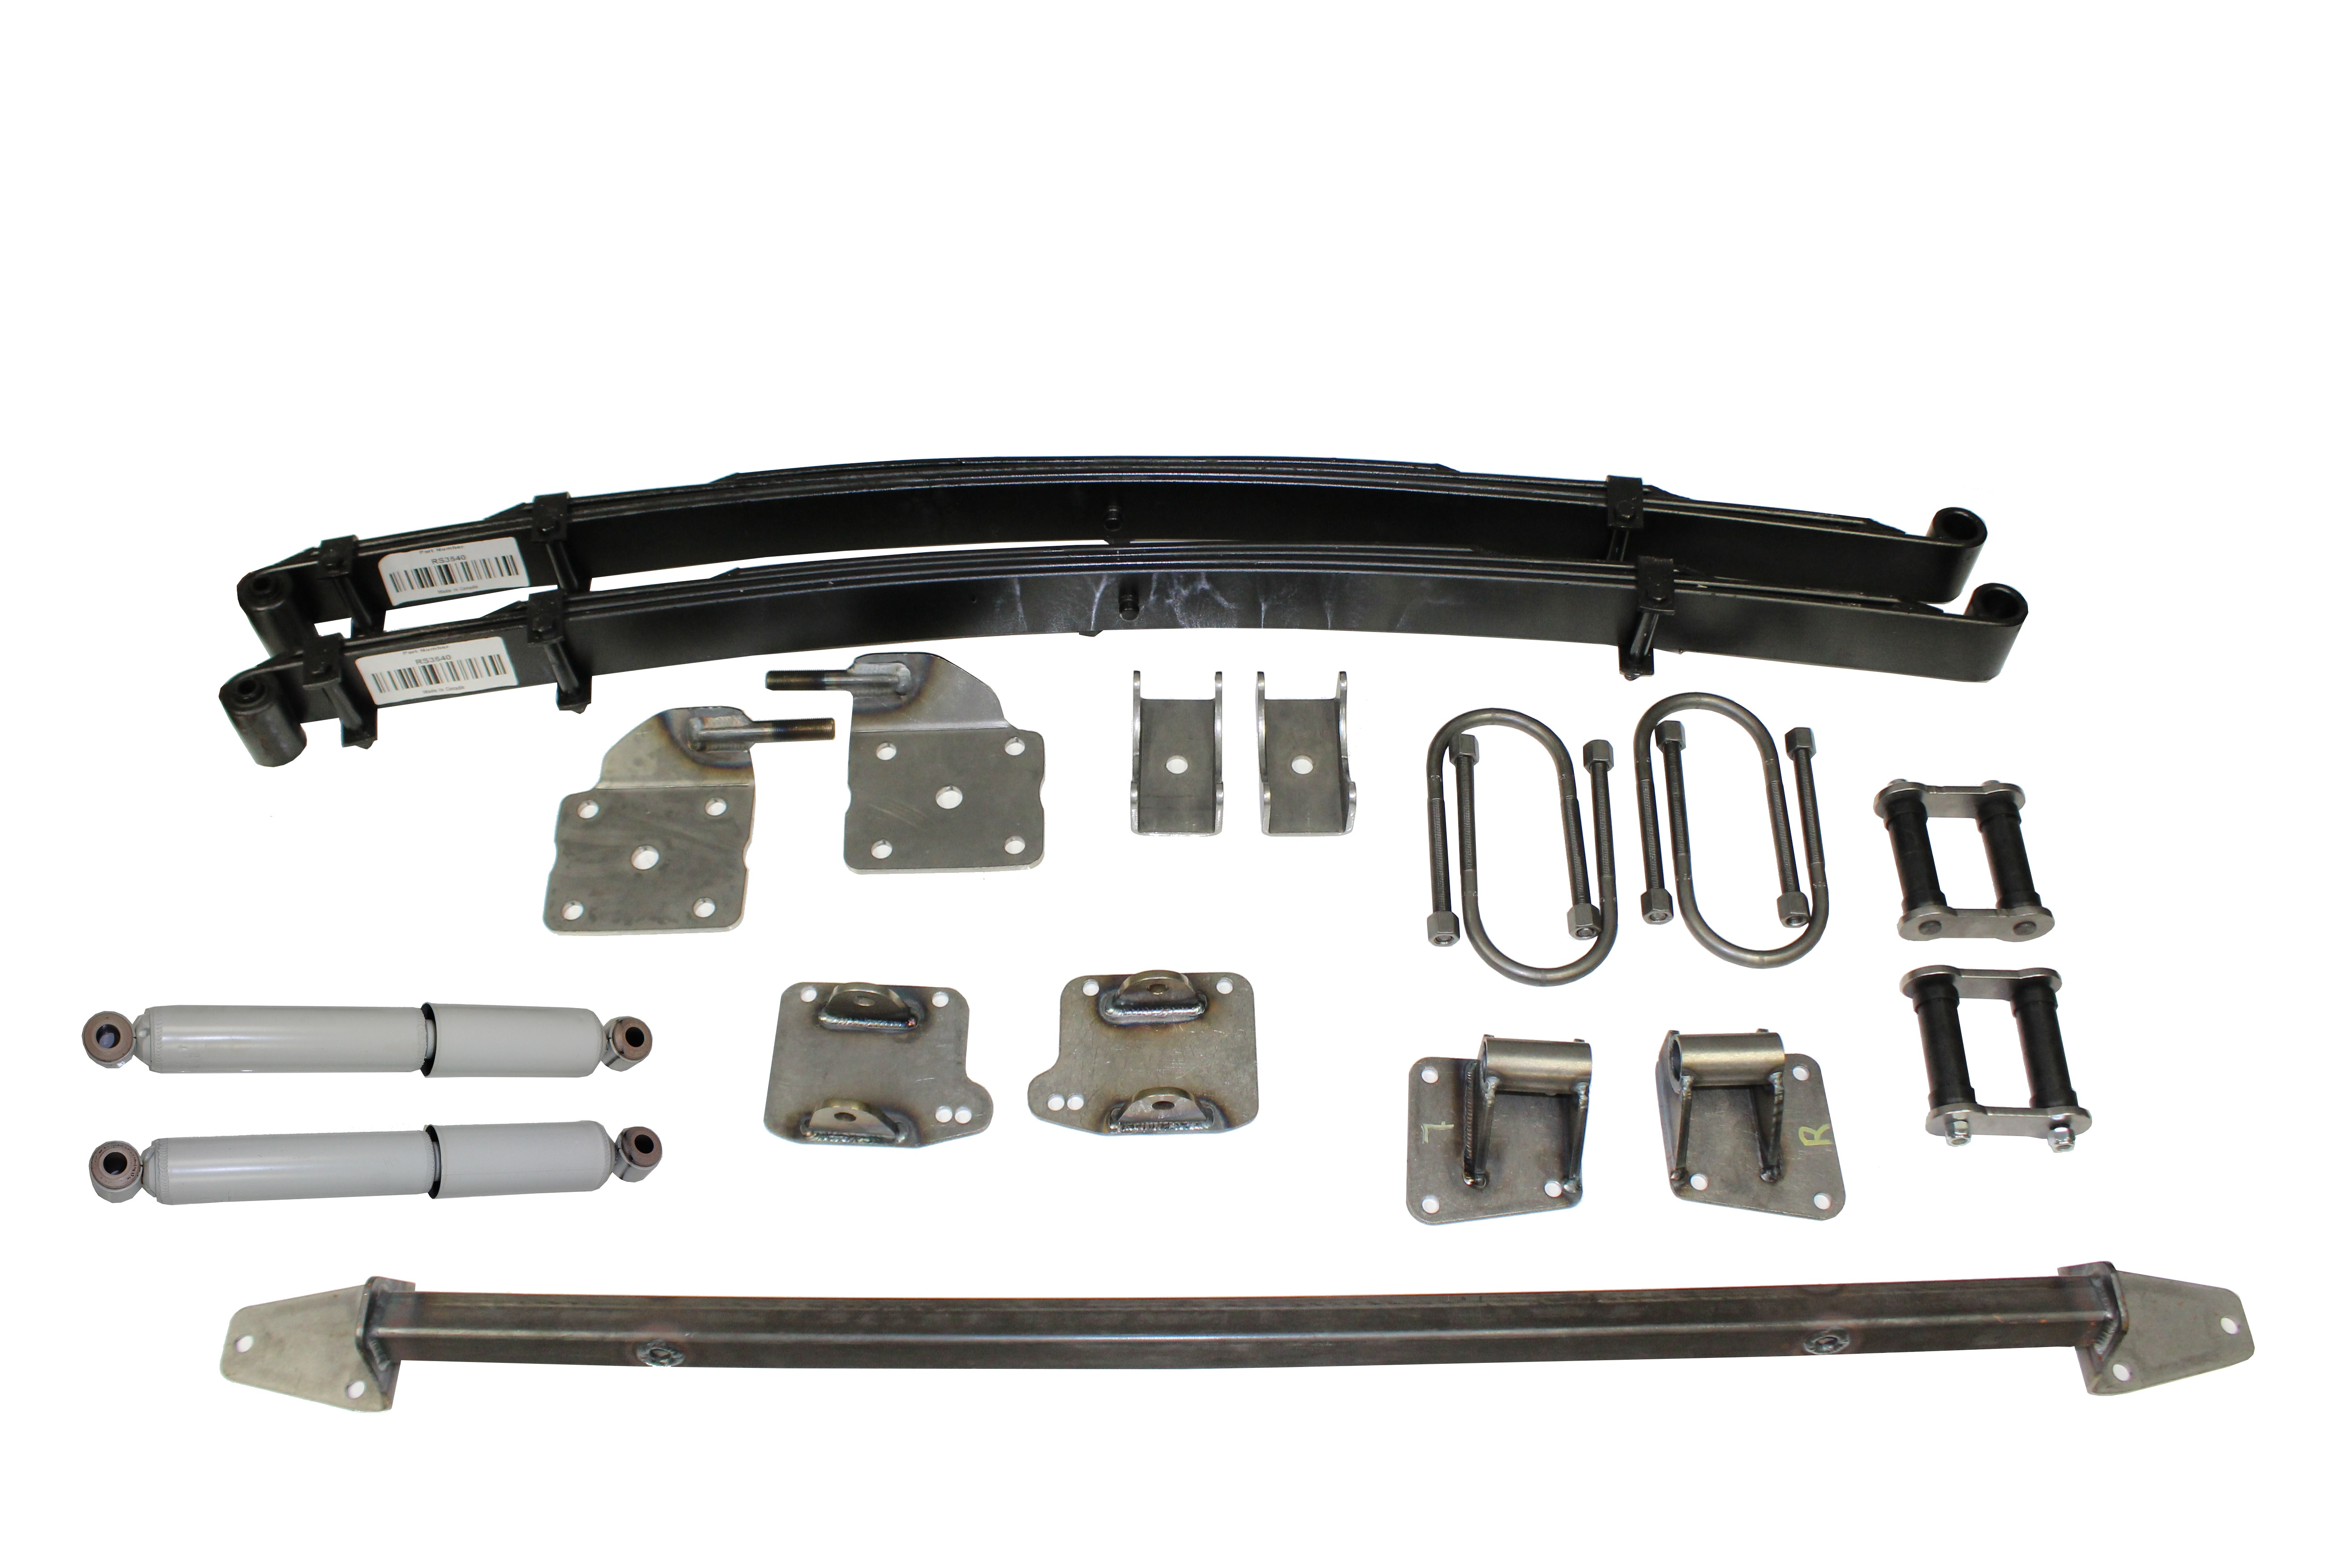 AS-1018CG Complete Leaf Spring Rear End Mounting Kit for 1937-1939 Chevy  (Gas Shocks)